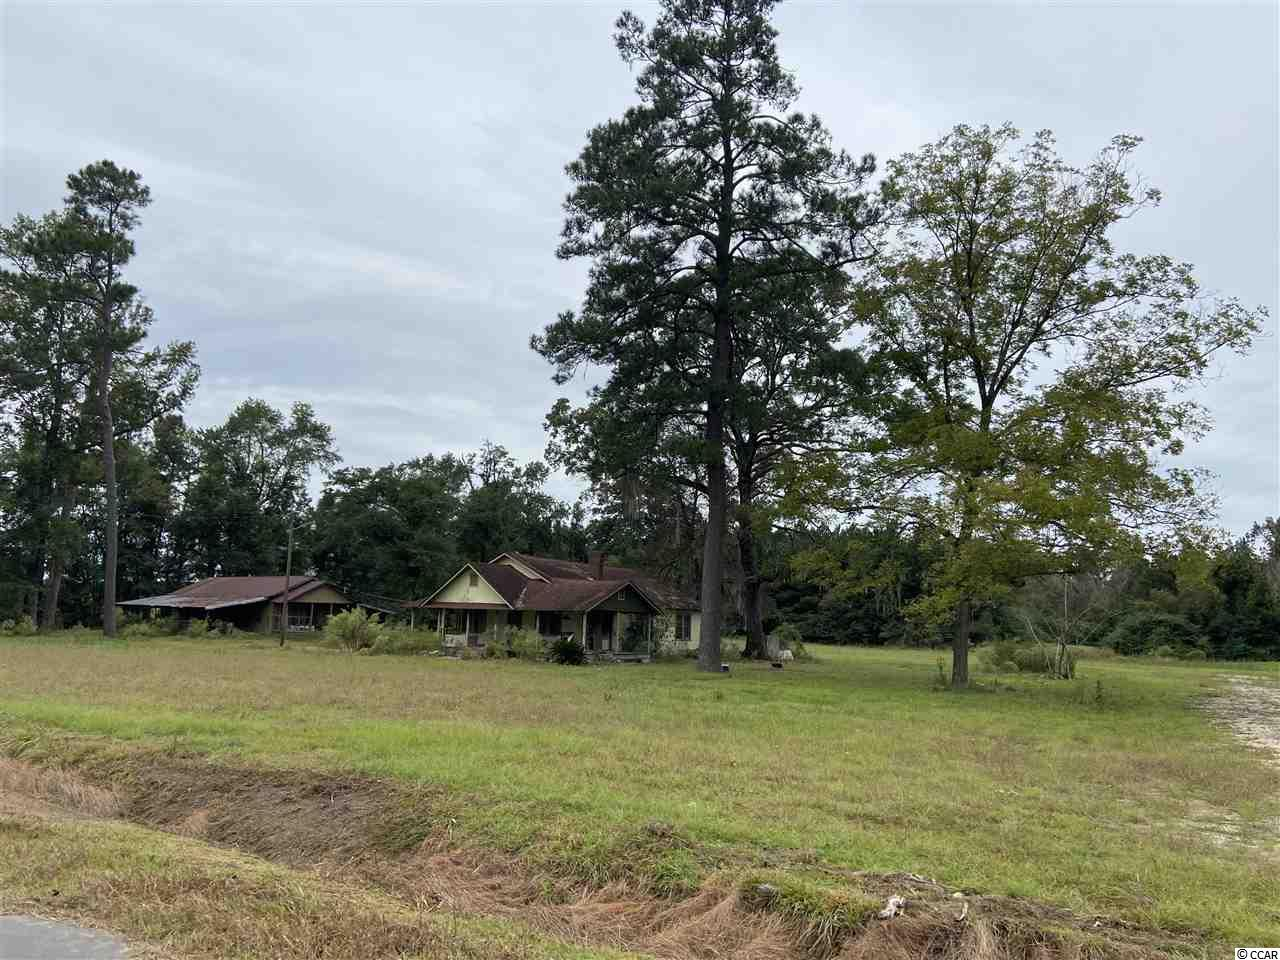 If you are looking for a quite place out in the country this would make a great farm for you. This property has some cleared area, woods and a small pond. The barn and home on the property are being sold as is. This property has great potential for a place to build your forever home and have some farm animals. Only a few minutes from downtown Conway. Public water is available